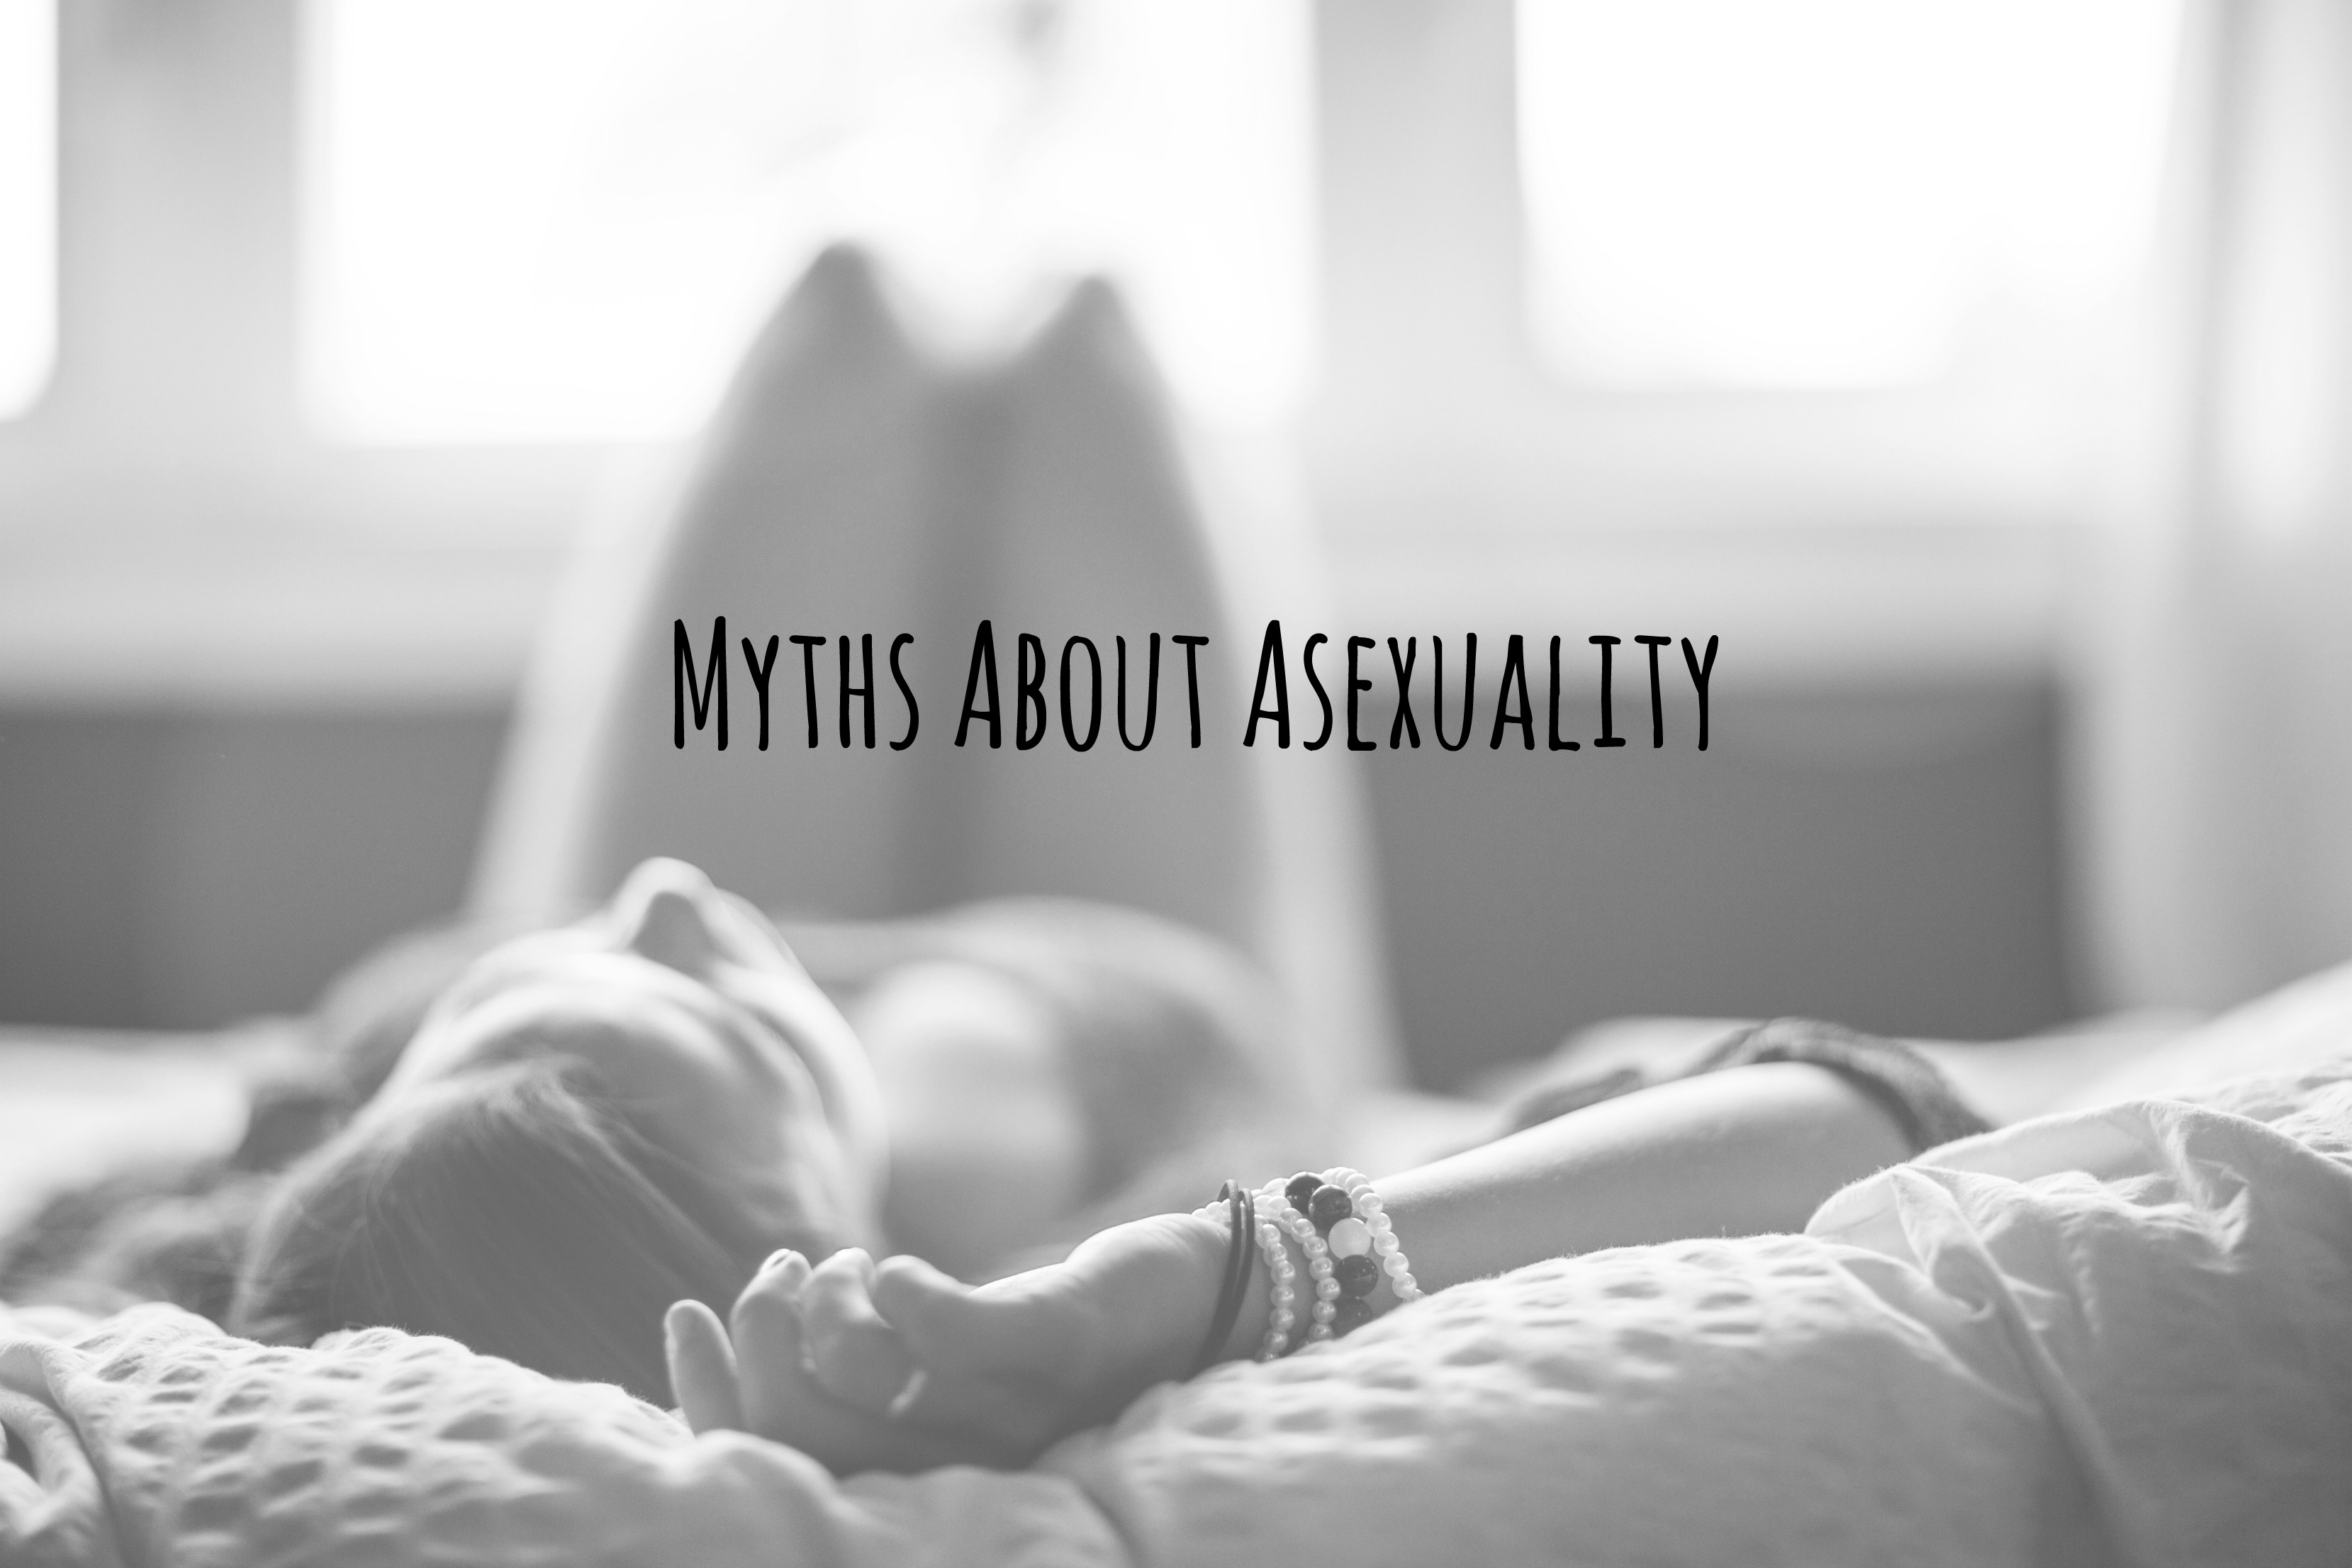 Asexual myths busted